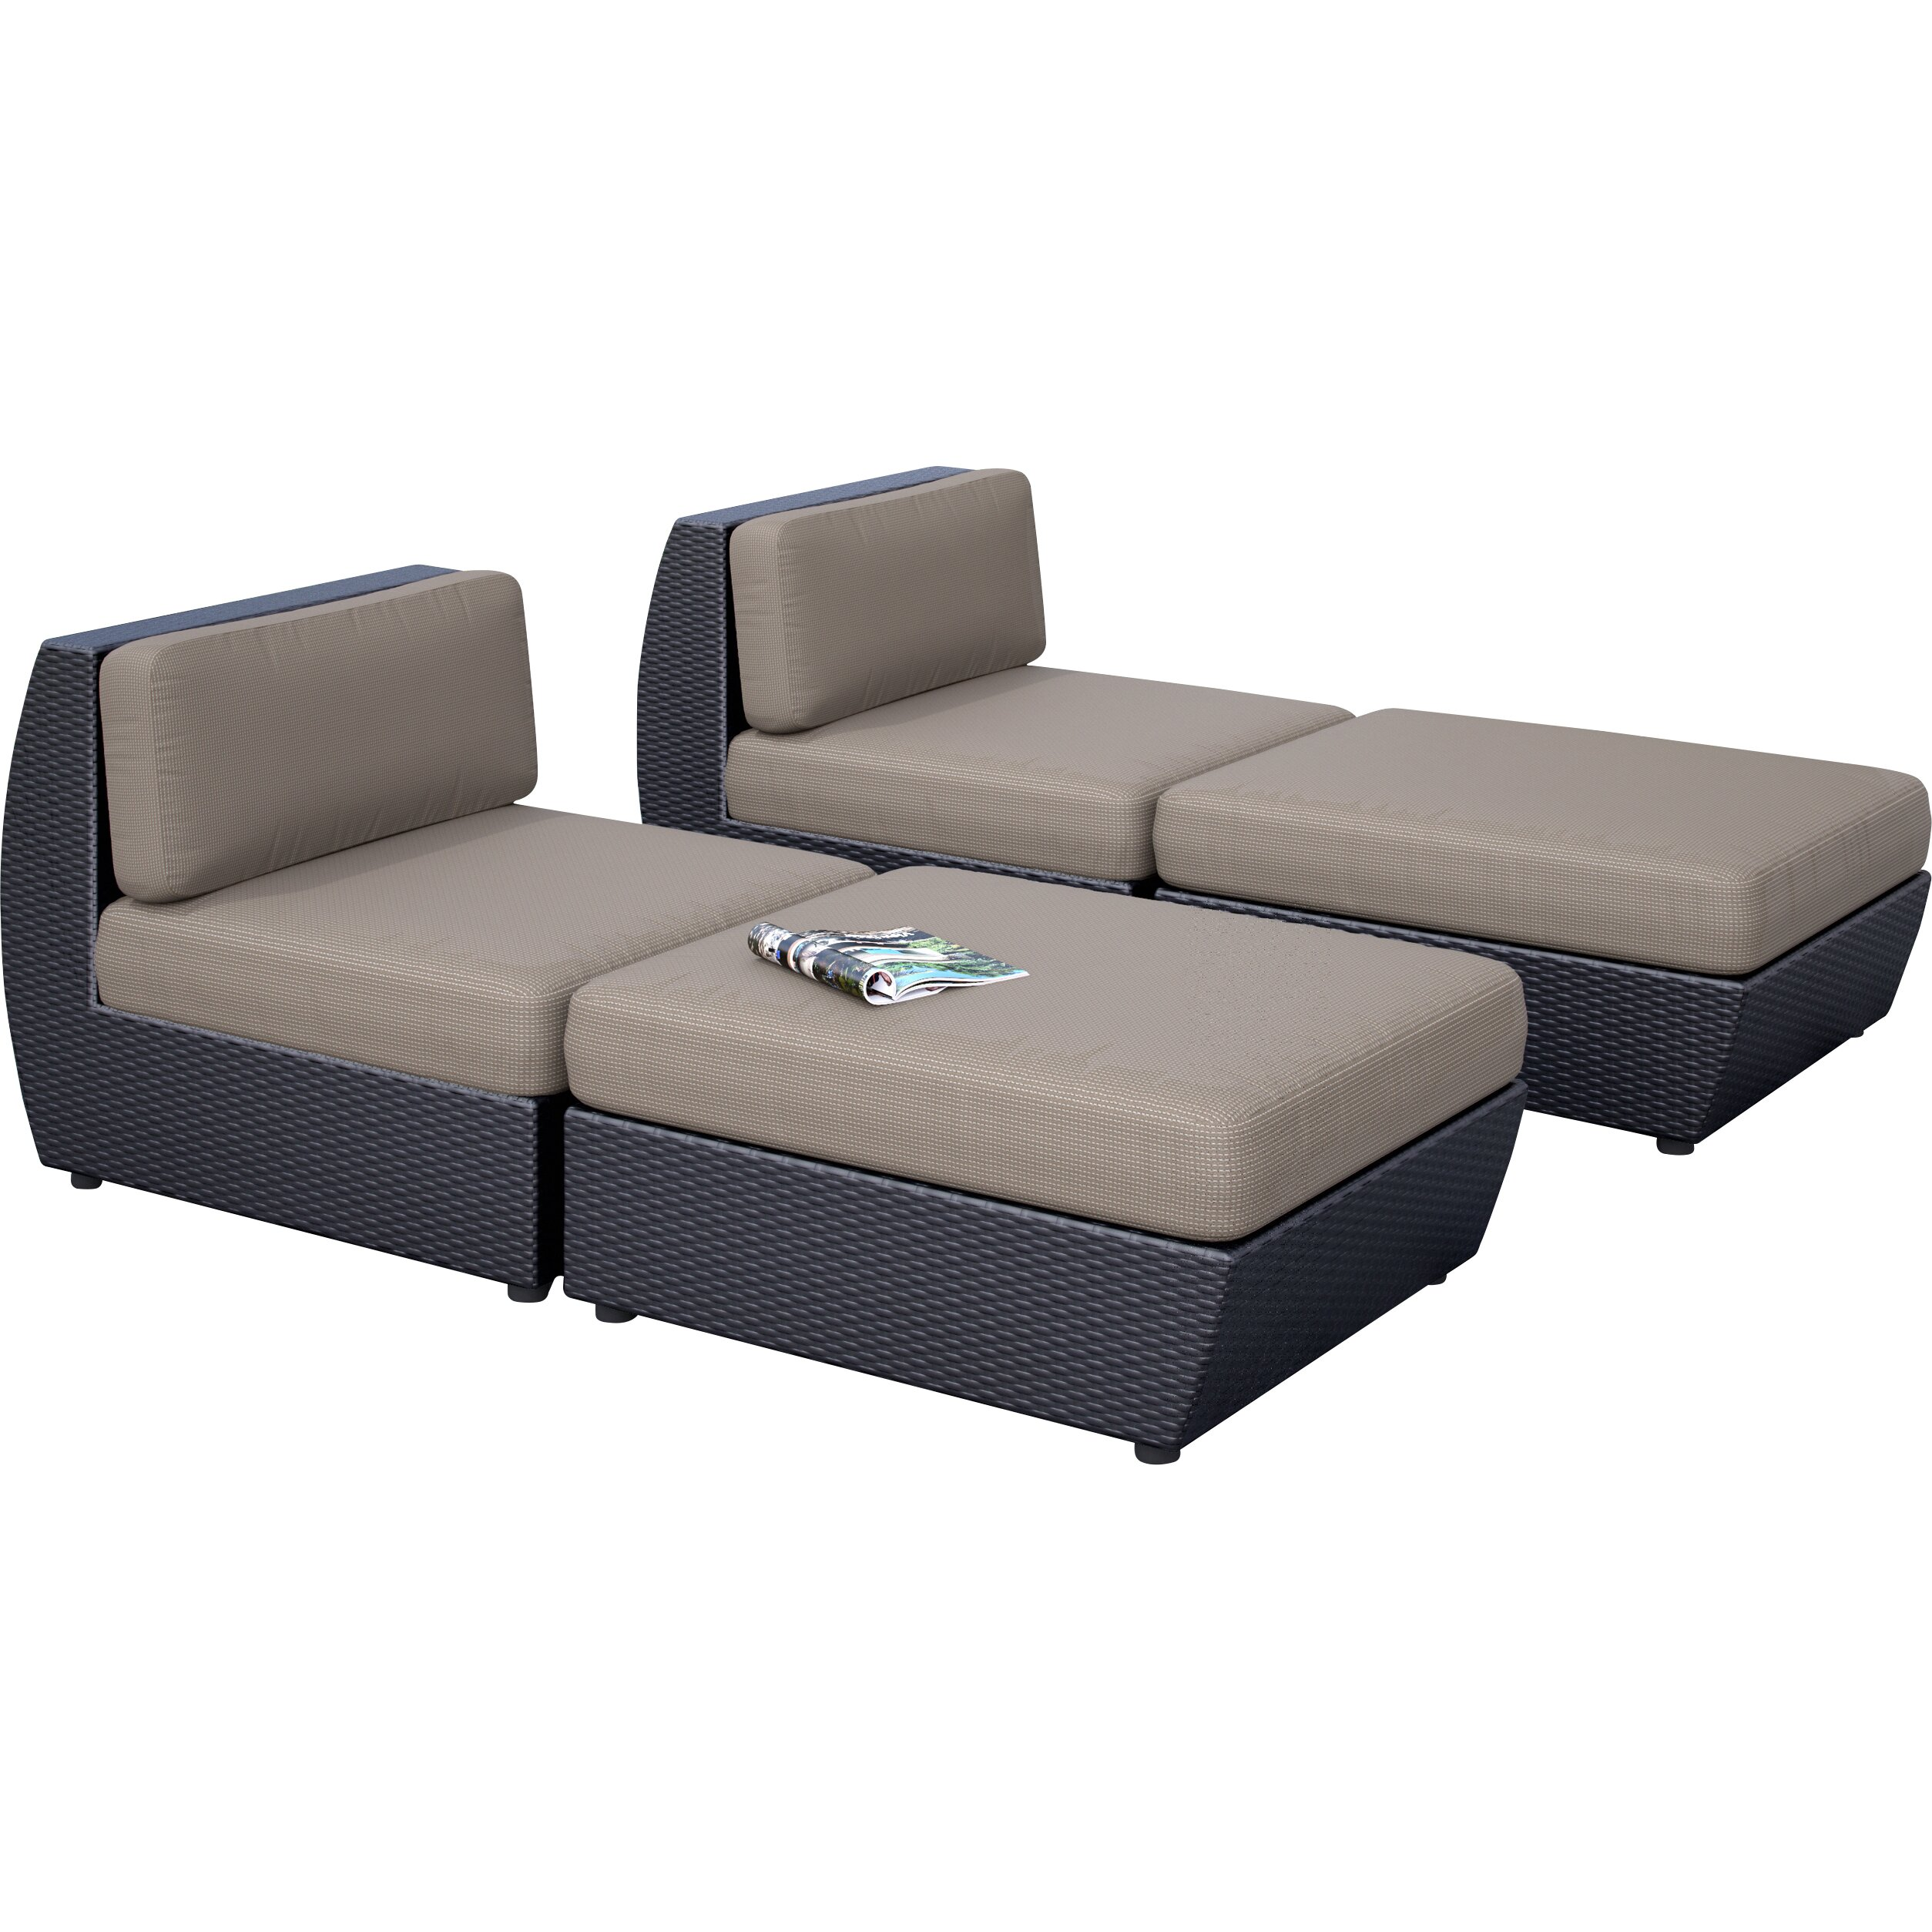 dCOR design Seattle 4 Piece Chaise Lounge Set with Cushion